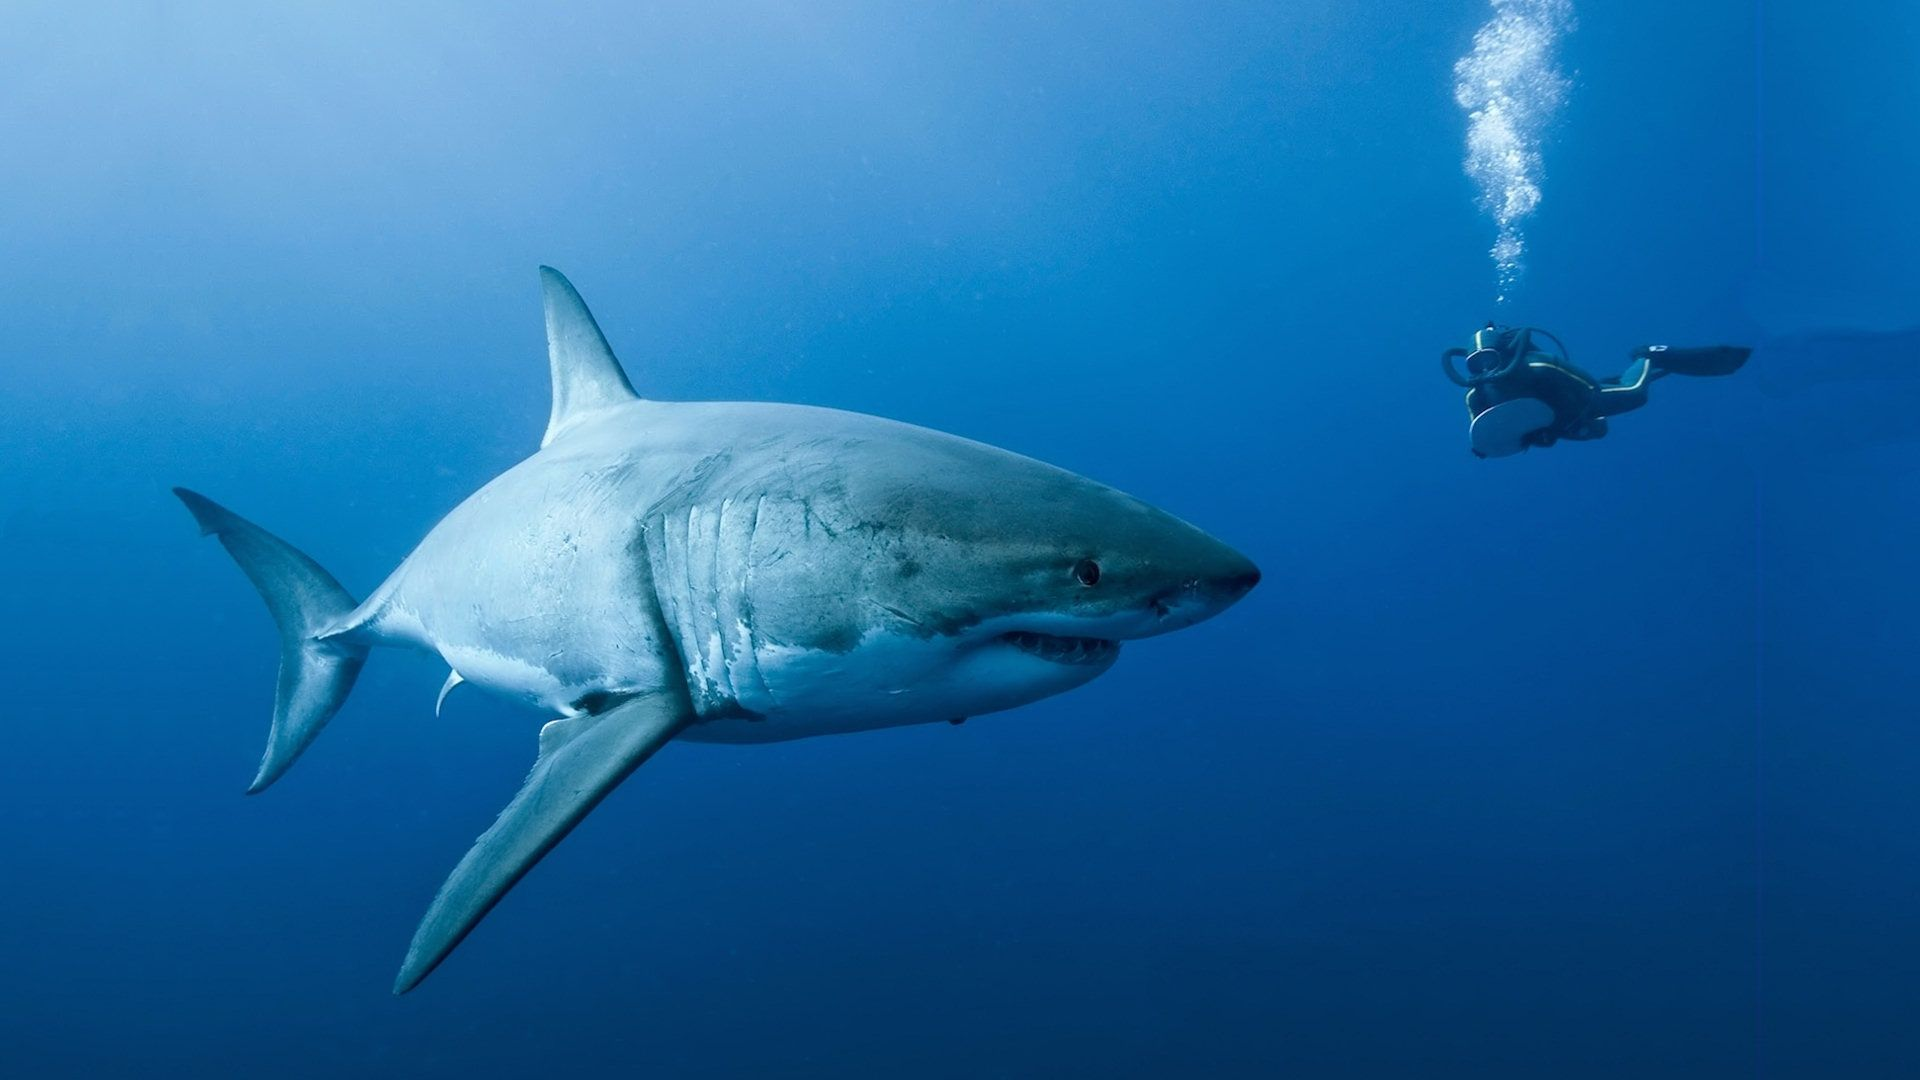 great white shark wallpapers hd - wallpaper cave | all wallpapers